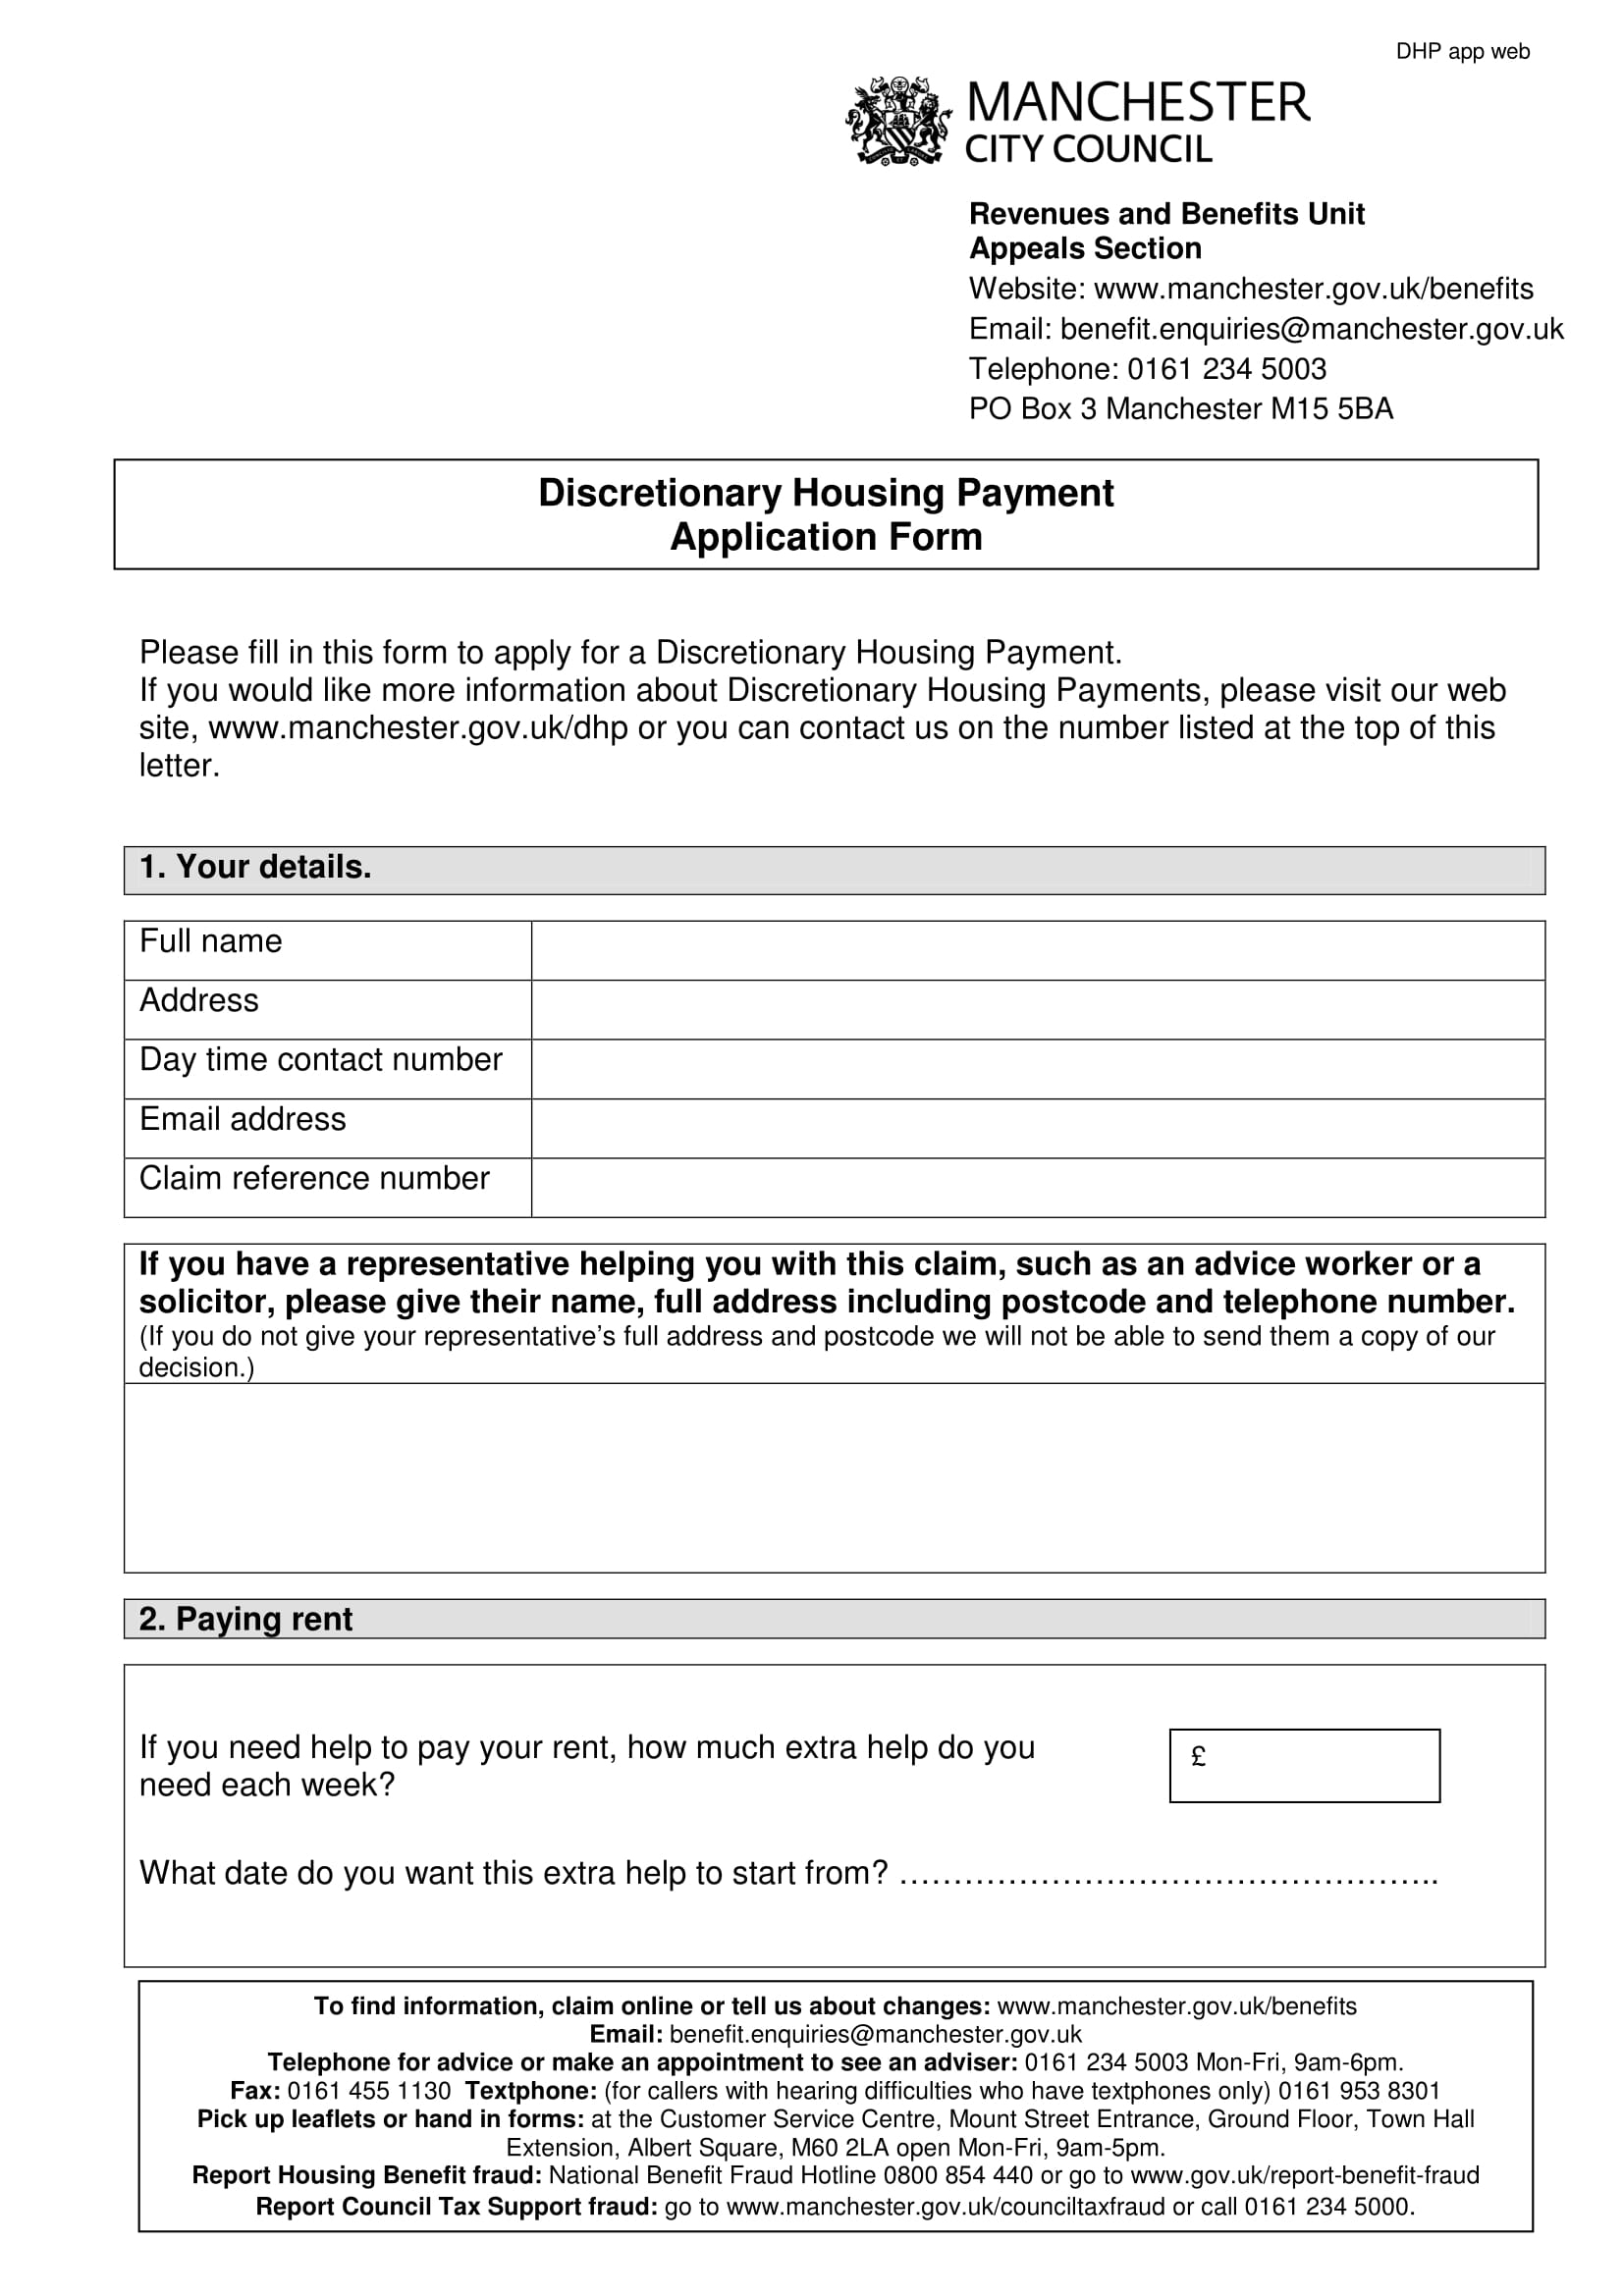 housing payment application form 1